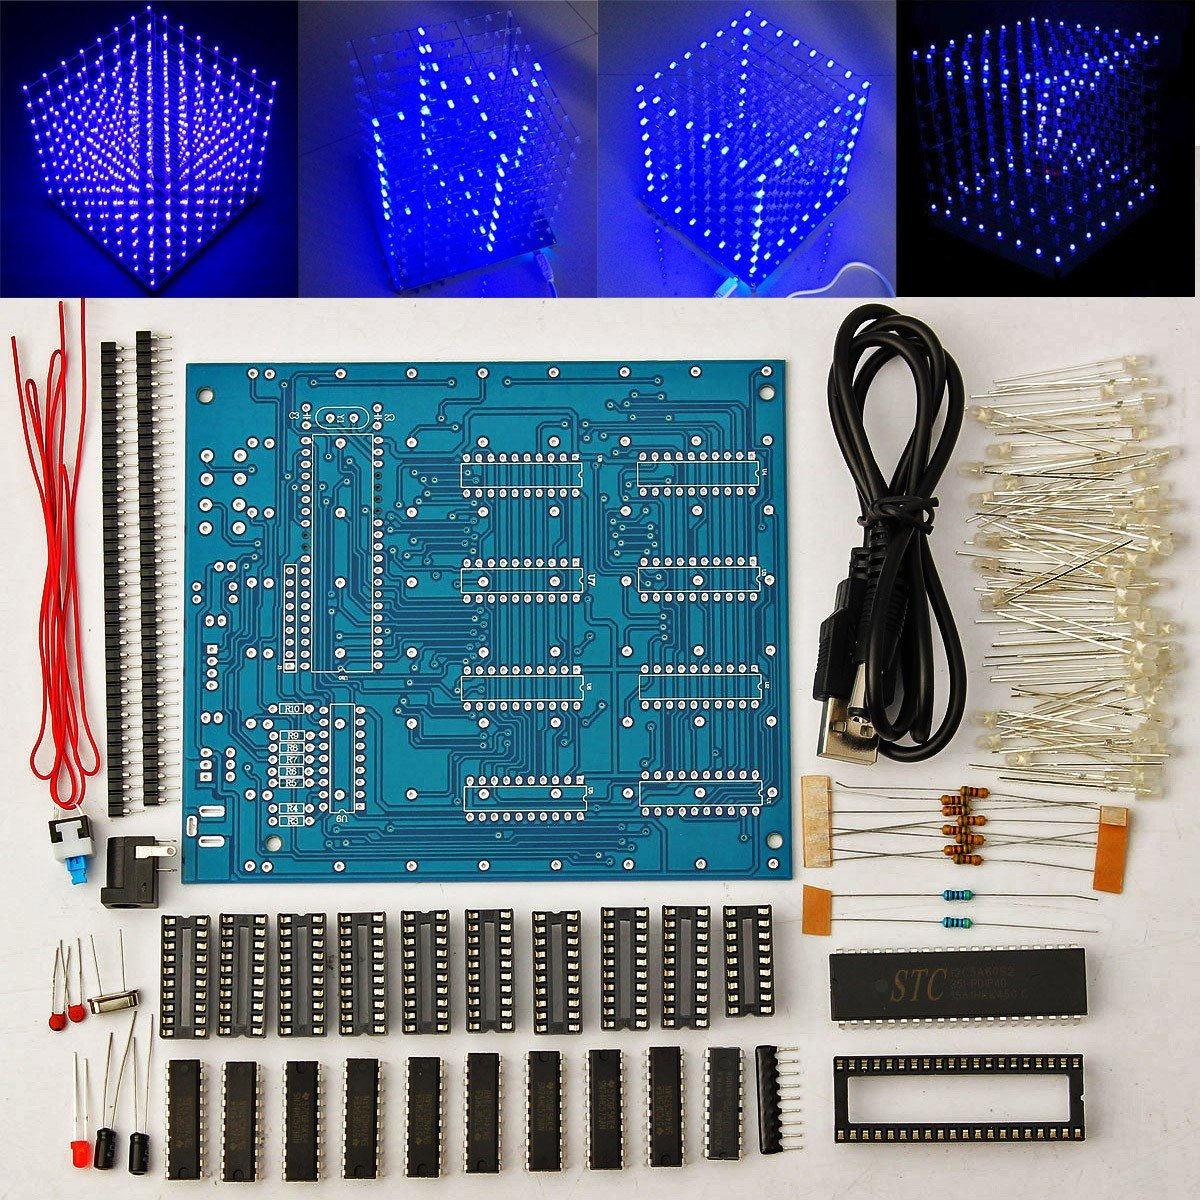 Arduino Diy Sansido 8x8x8 Led Cube 3d Light Square Electronic Circuit Diagram Of Rgb Soldering Sarter Kit Board Blue Computers Accessories